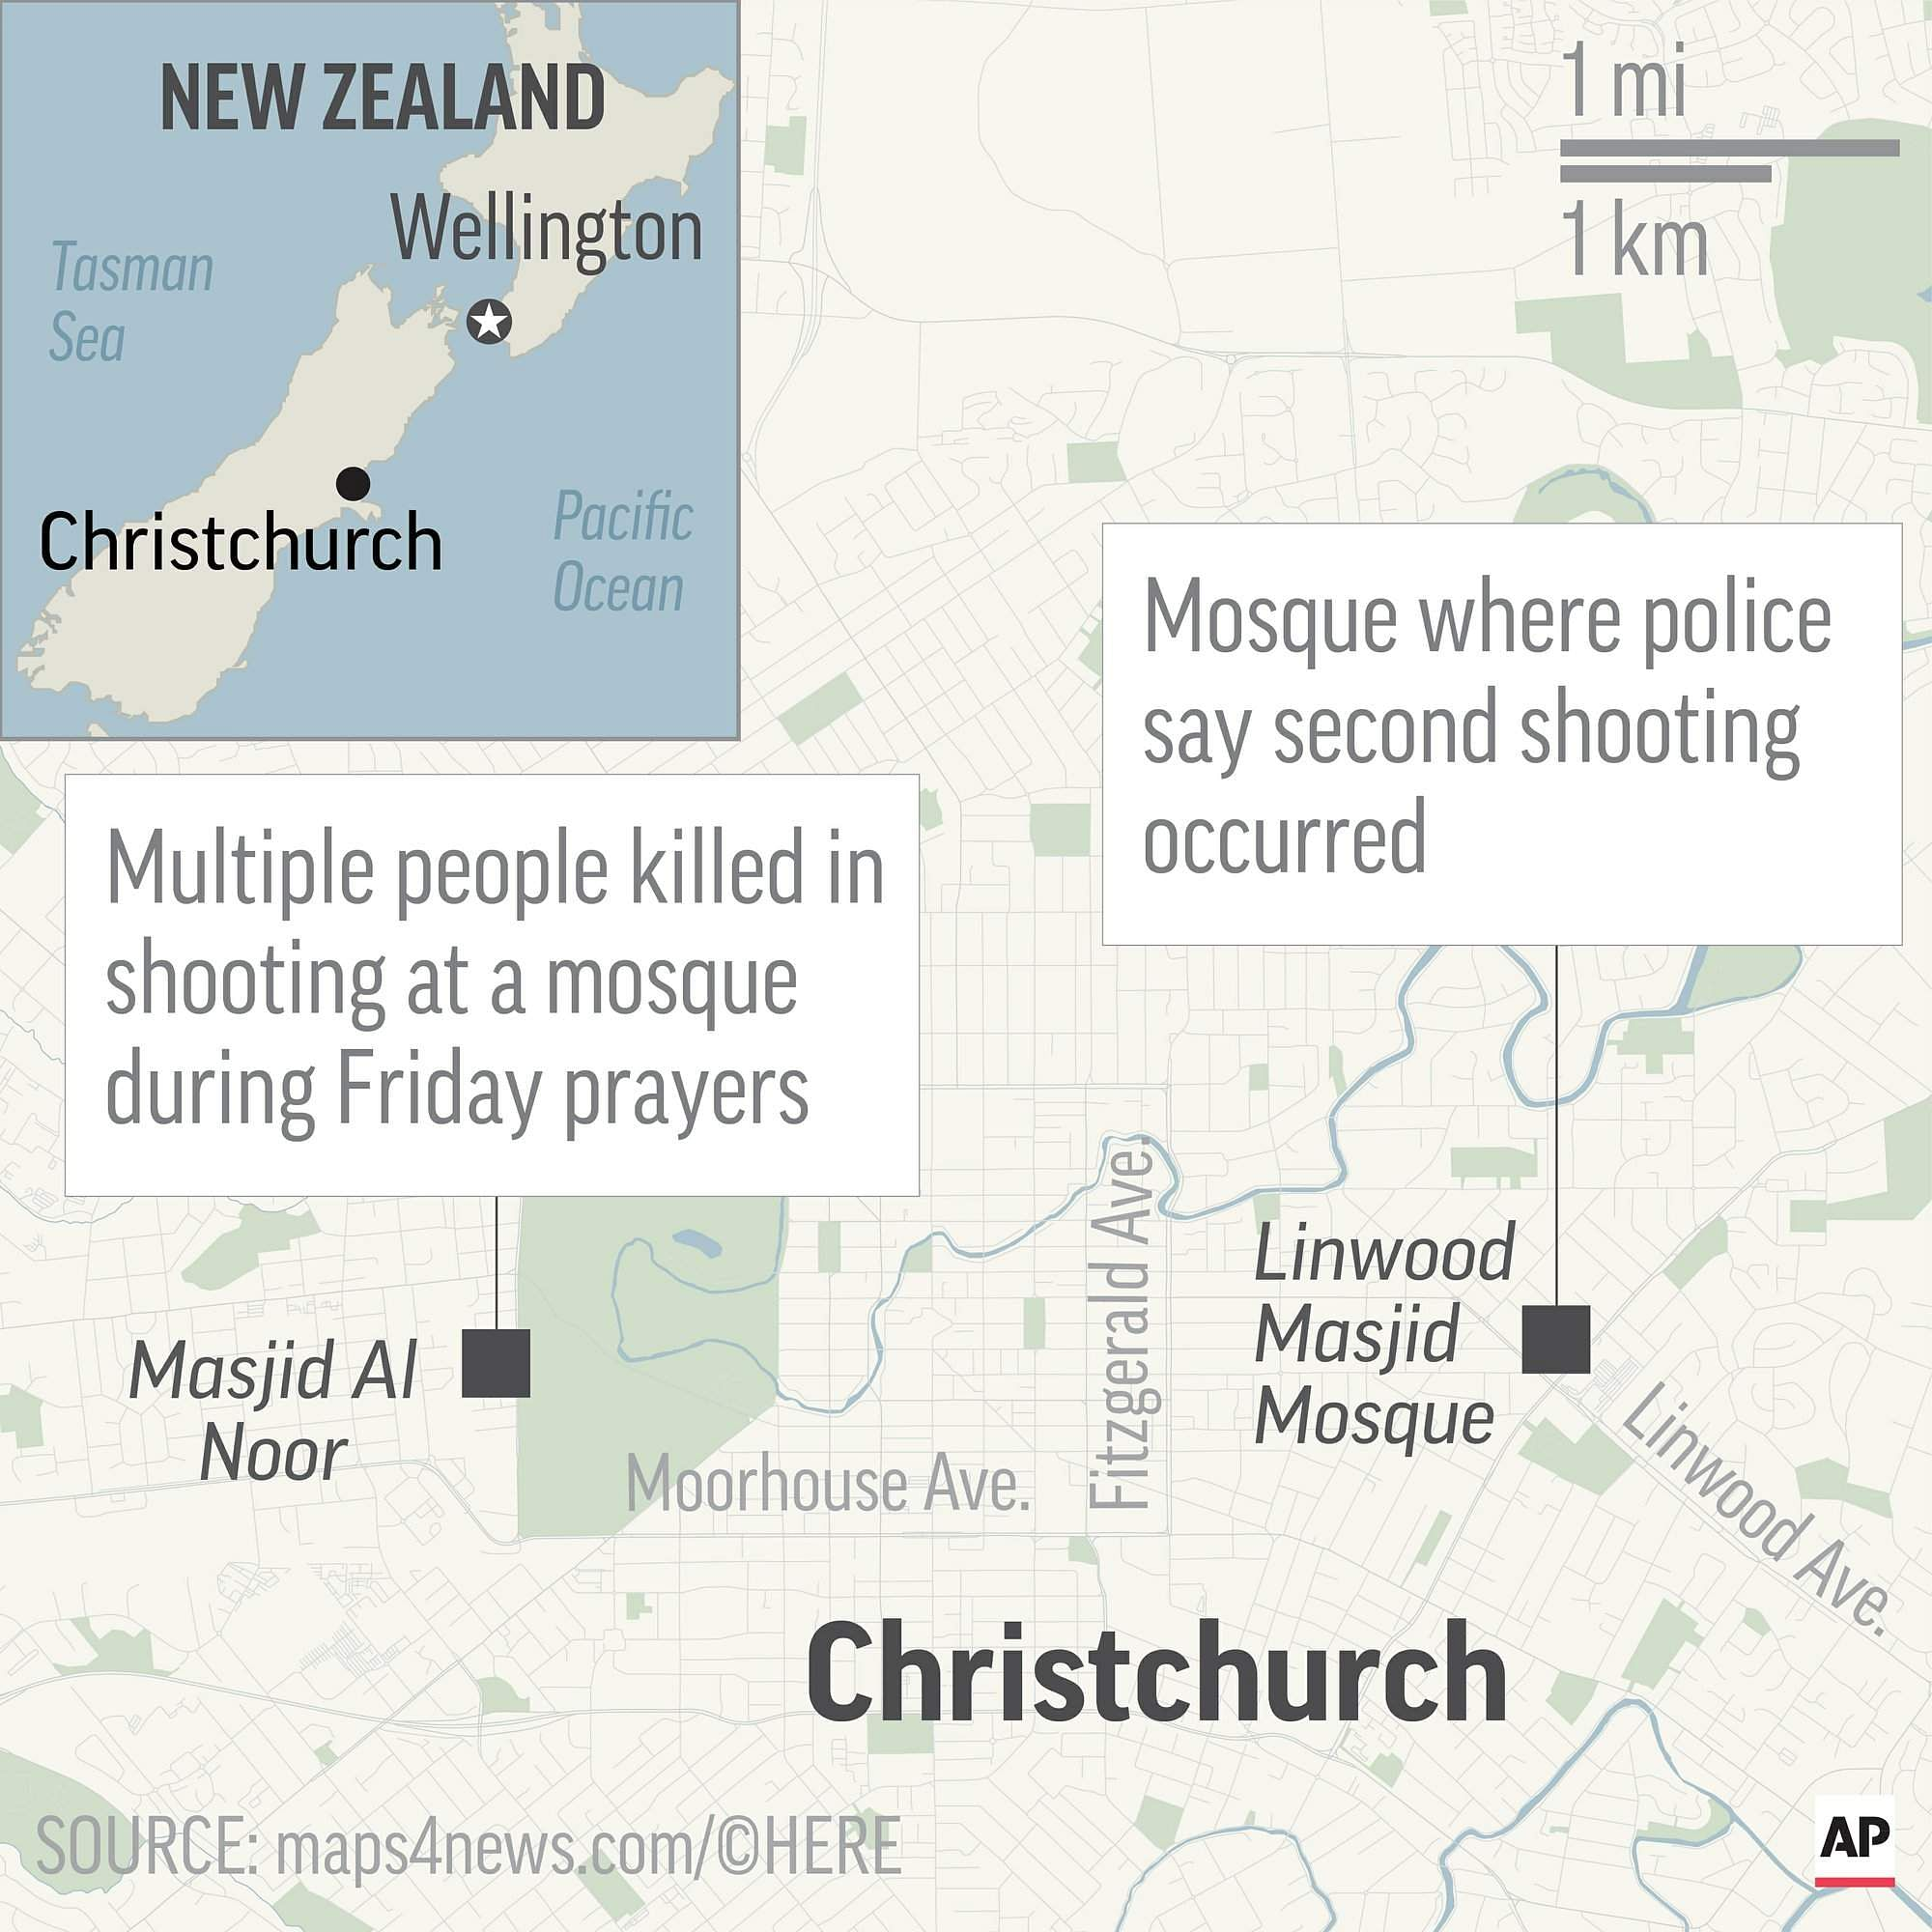 Map locates two mosques in Christchurch and Linwood New Zealand where mass shootings occurred